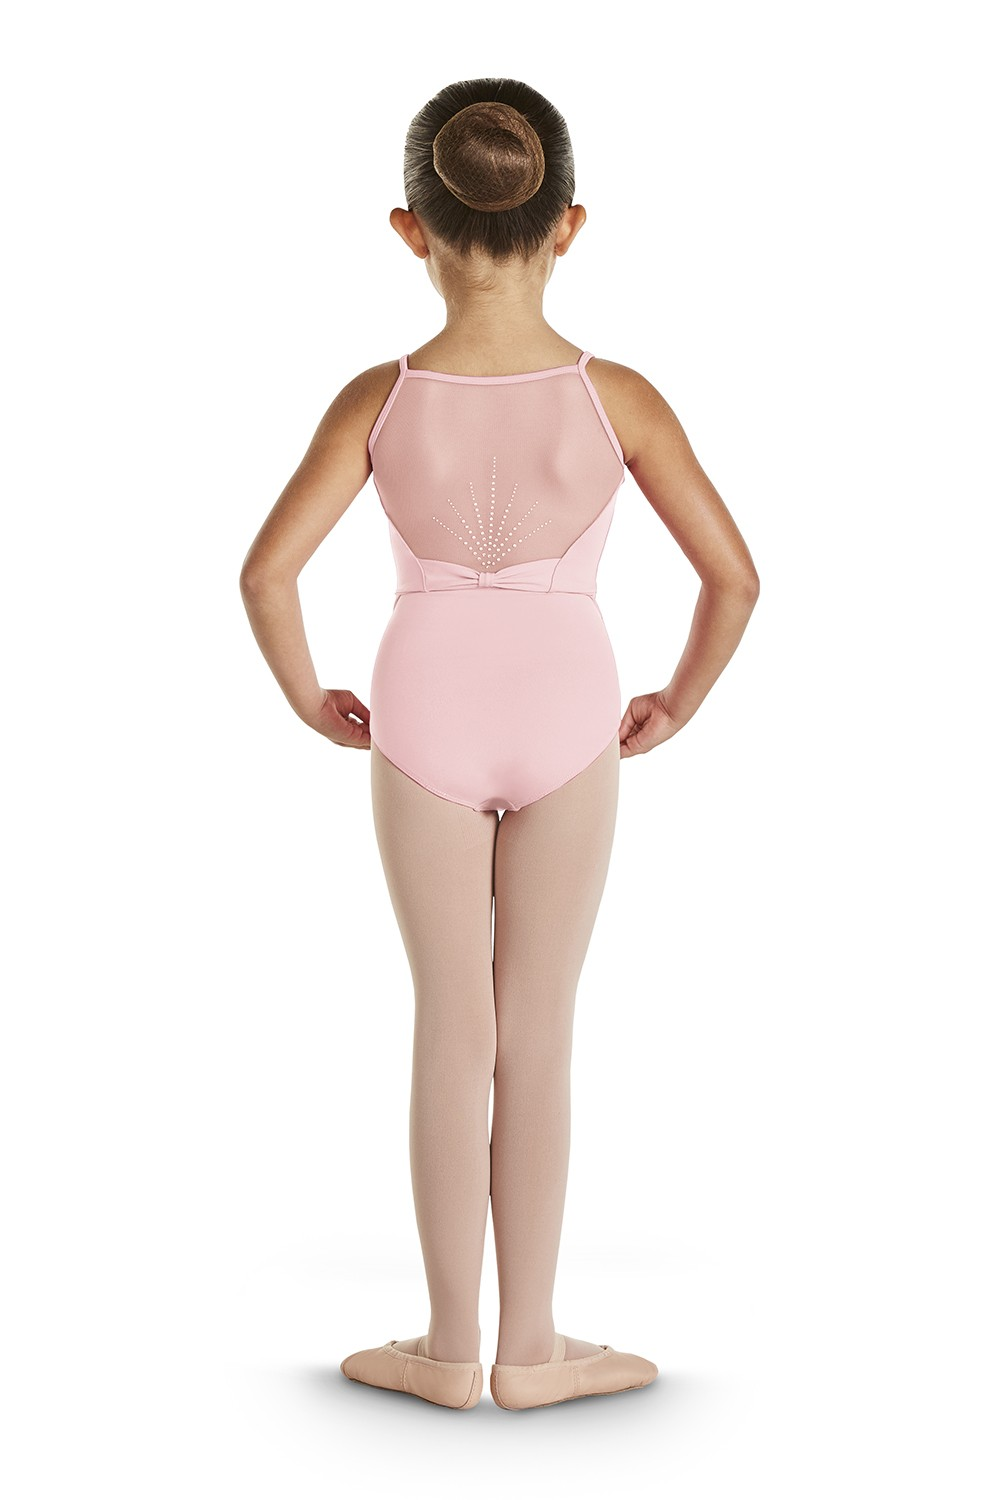 Tia Children's Dance Leotards